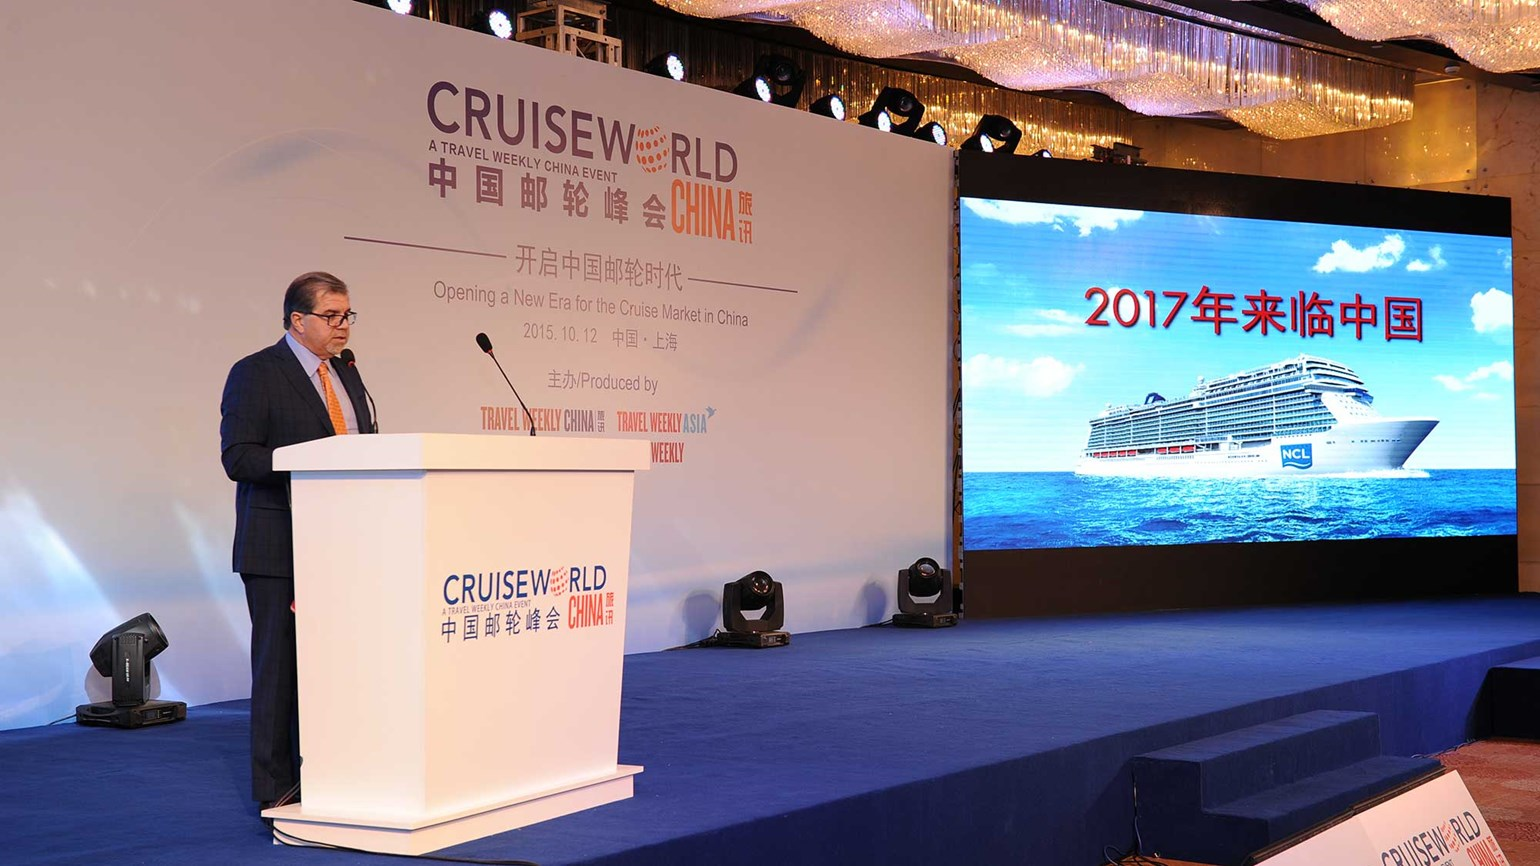 Norwegian Cruise Line to build a ship for China